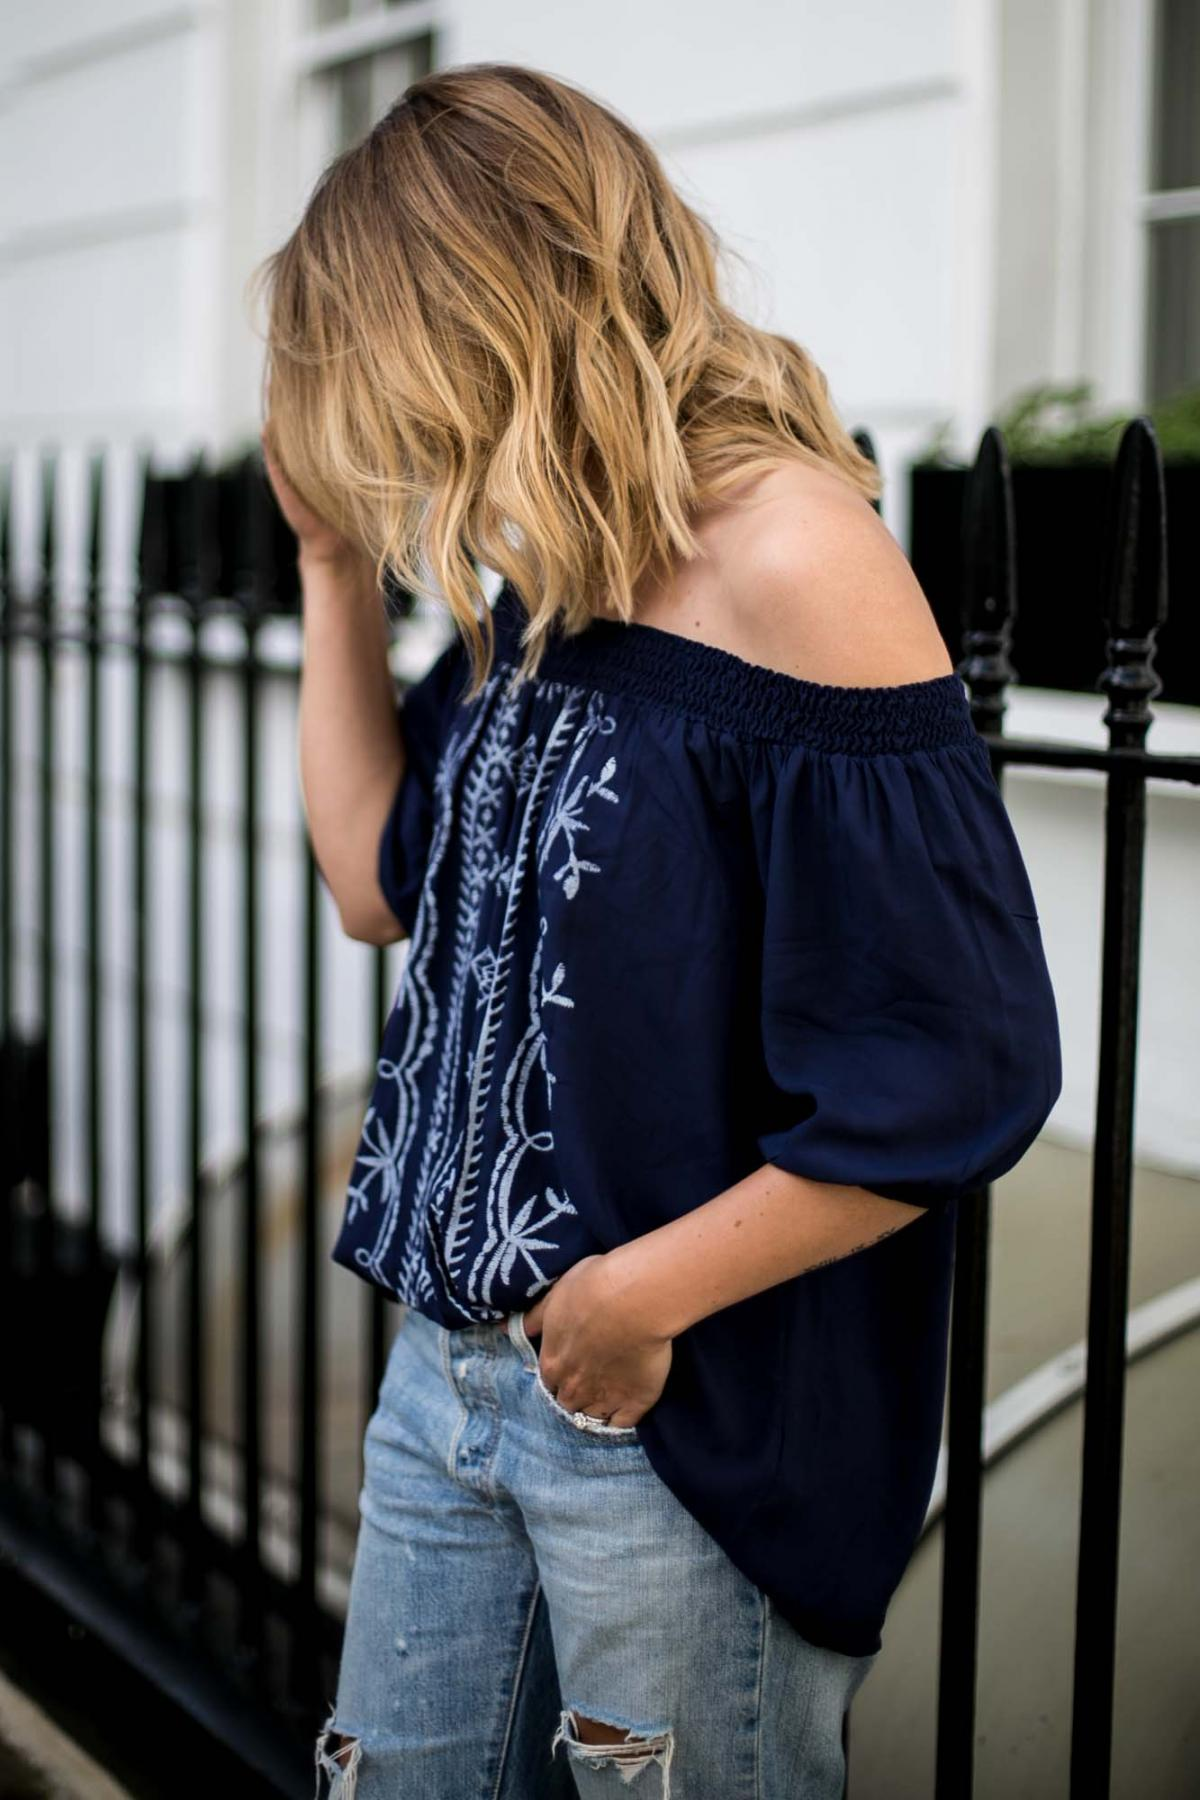 balayage beach waves hair, long bob, lob hair style, bronde, off shoulder navy top, ripped boyfriend jeans